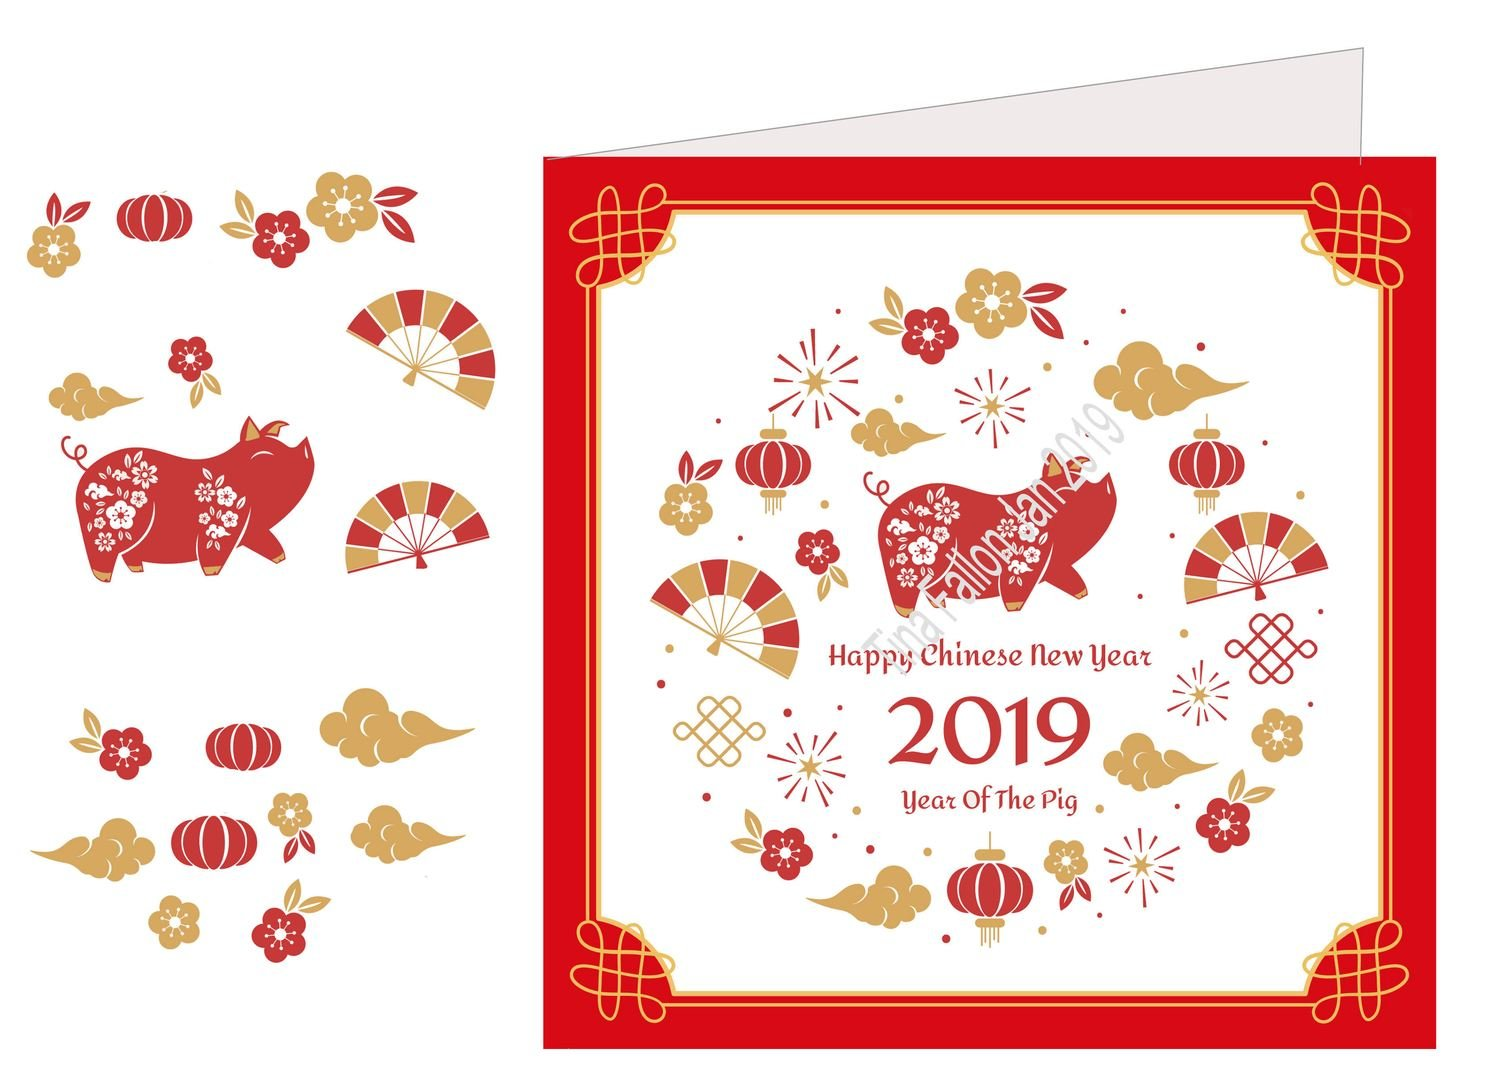 Chinese Year of the Pig  3D print and cut card front / topper